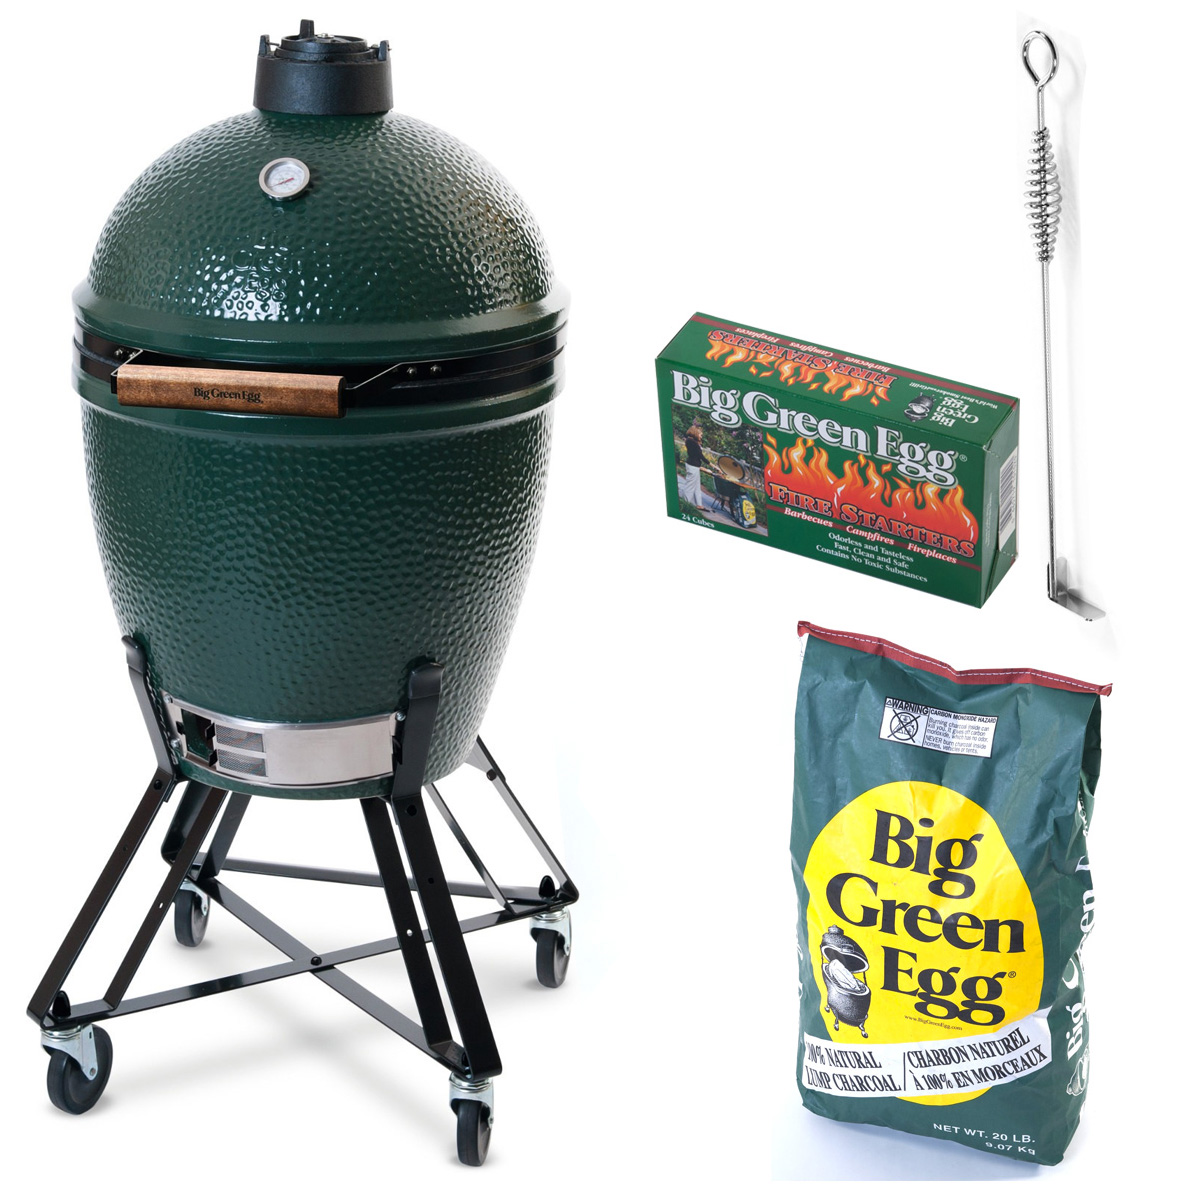 Hiiligrilli Big Green Egg Peruspaketti Large